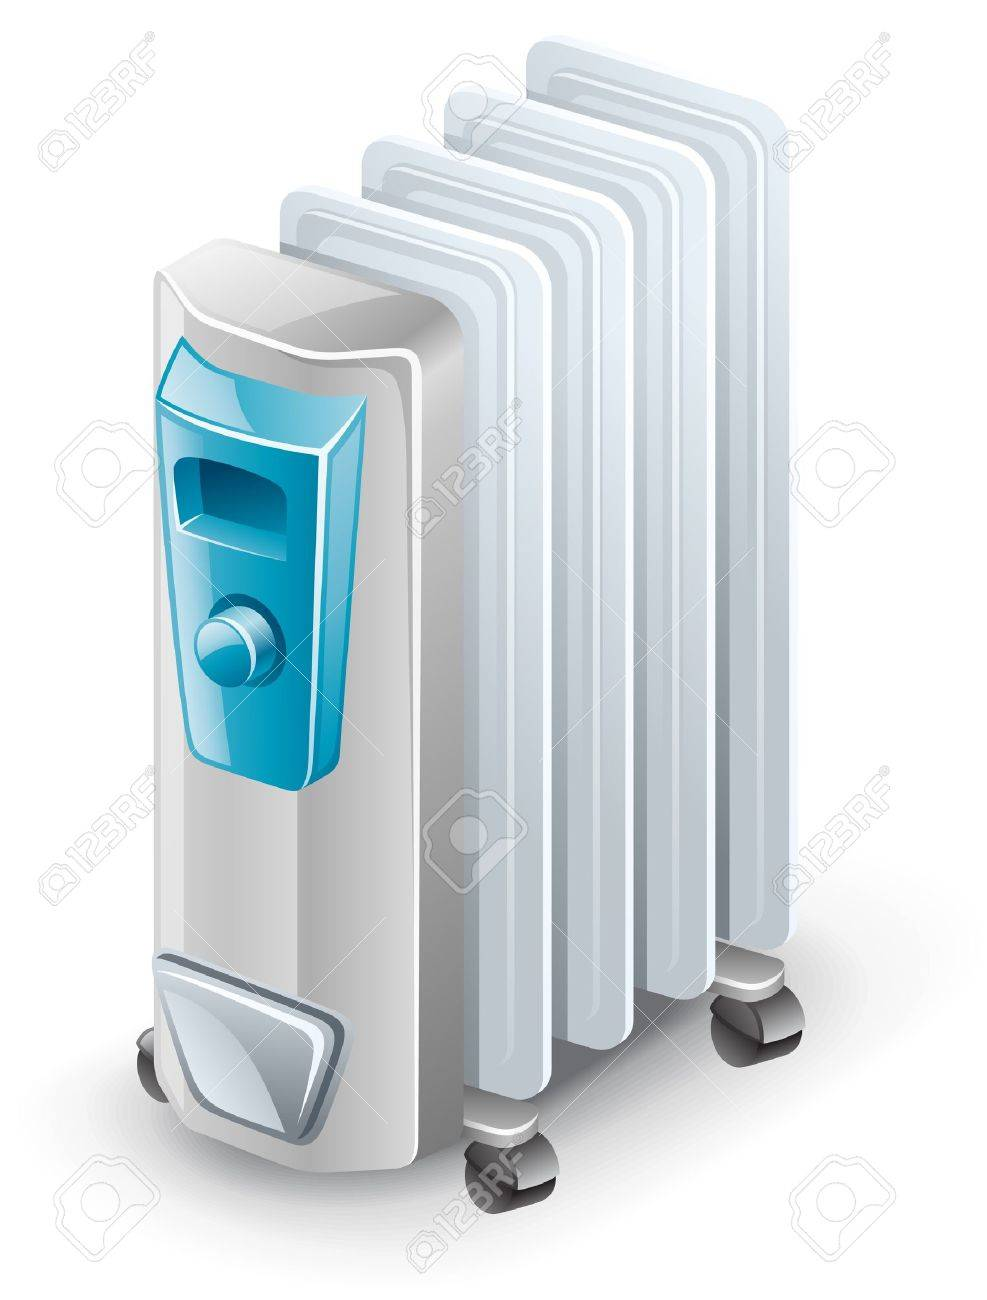 Vector illustration of electric oil heater on white background.